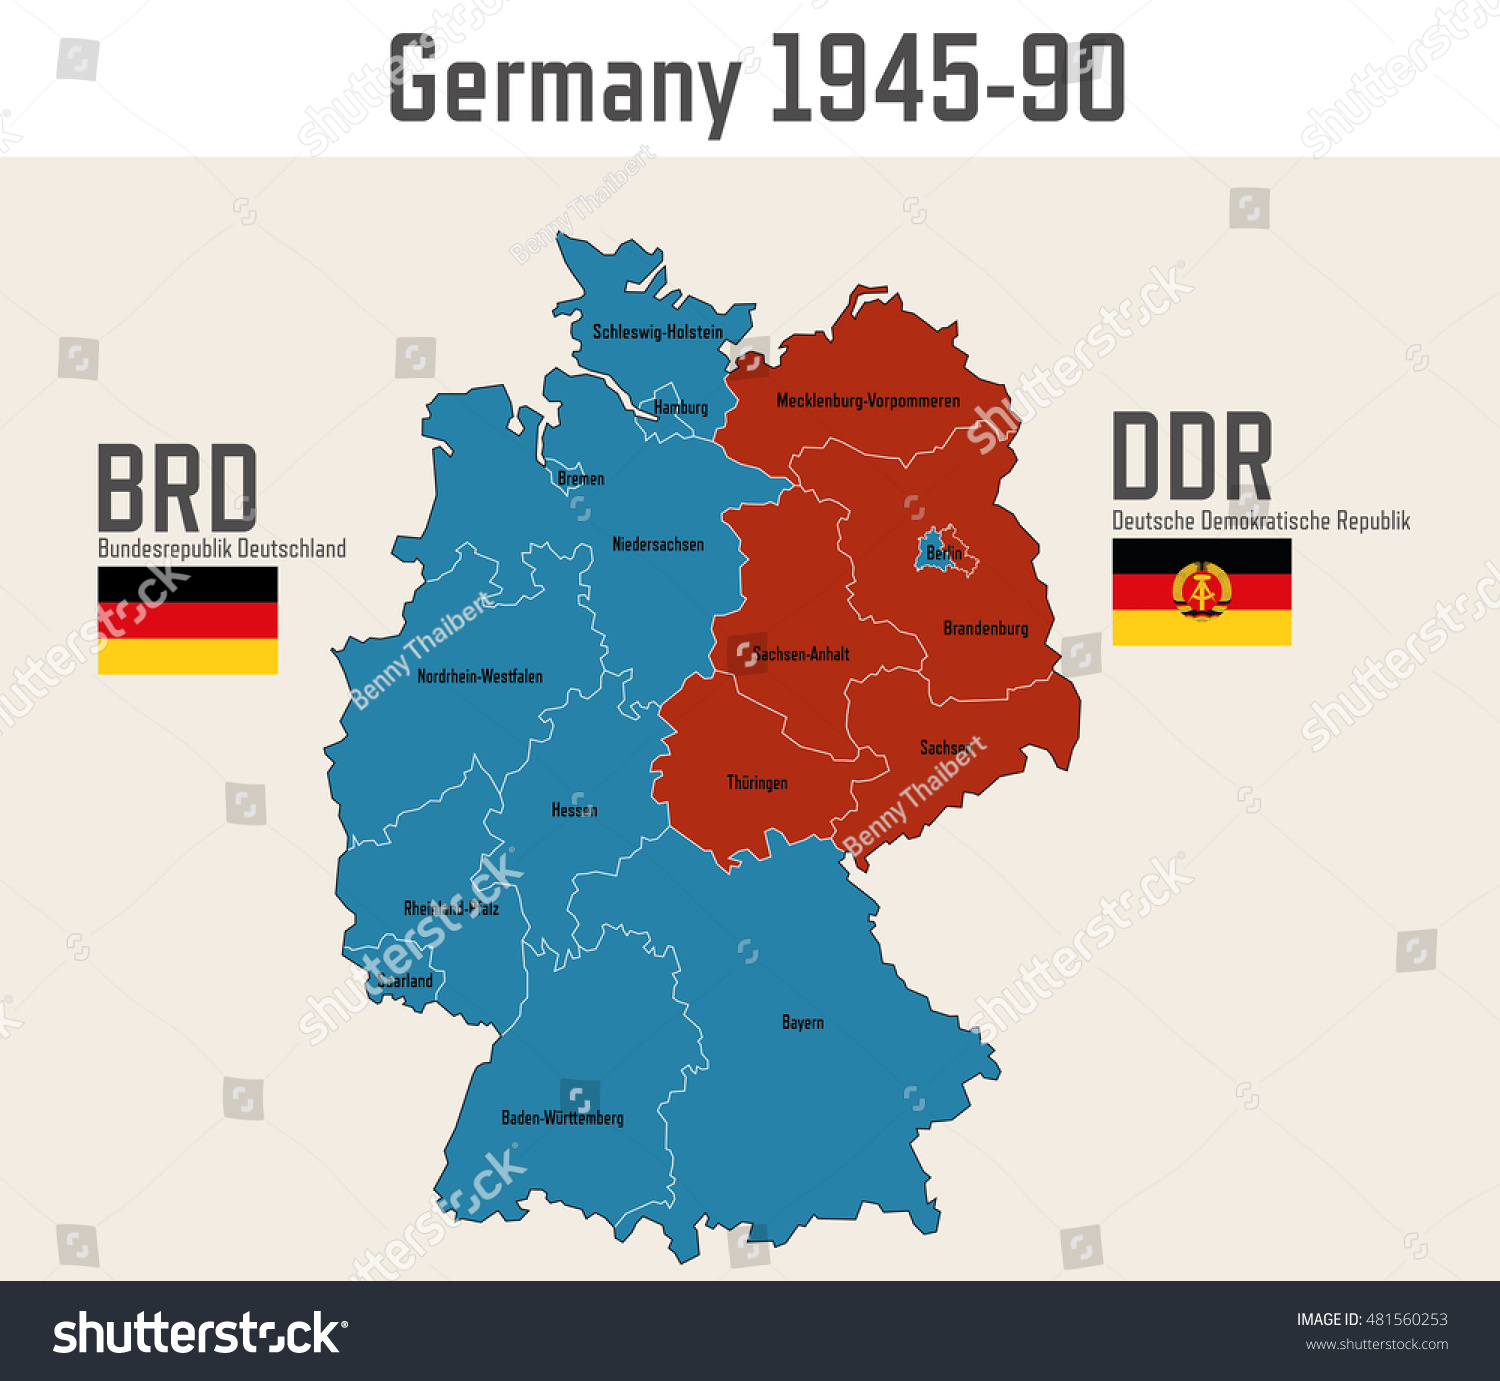 Germany Cold War Map Flags Eastern Stock Vector (Royalty ... on map of europe cold war, nato cold war, berlin wall map cold war, map of berlin world war 2, map of warsaw pact cold war,